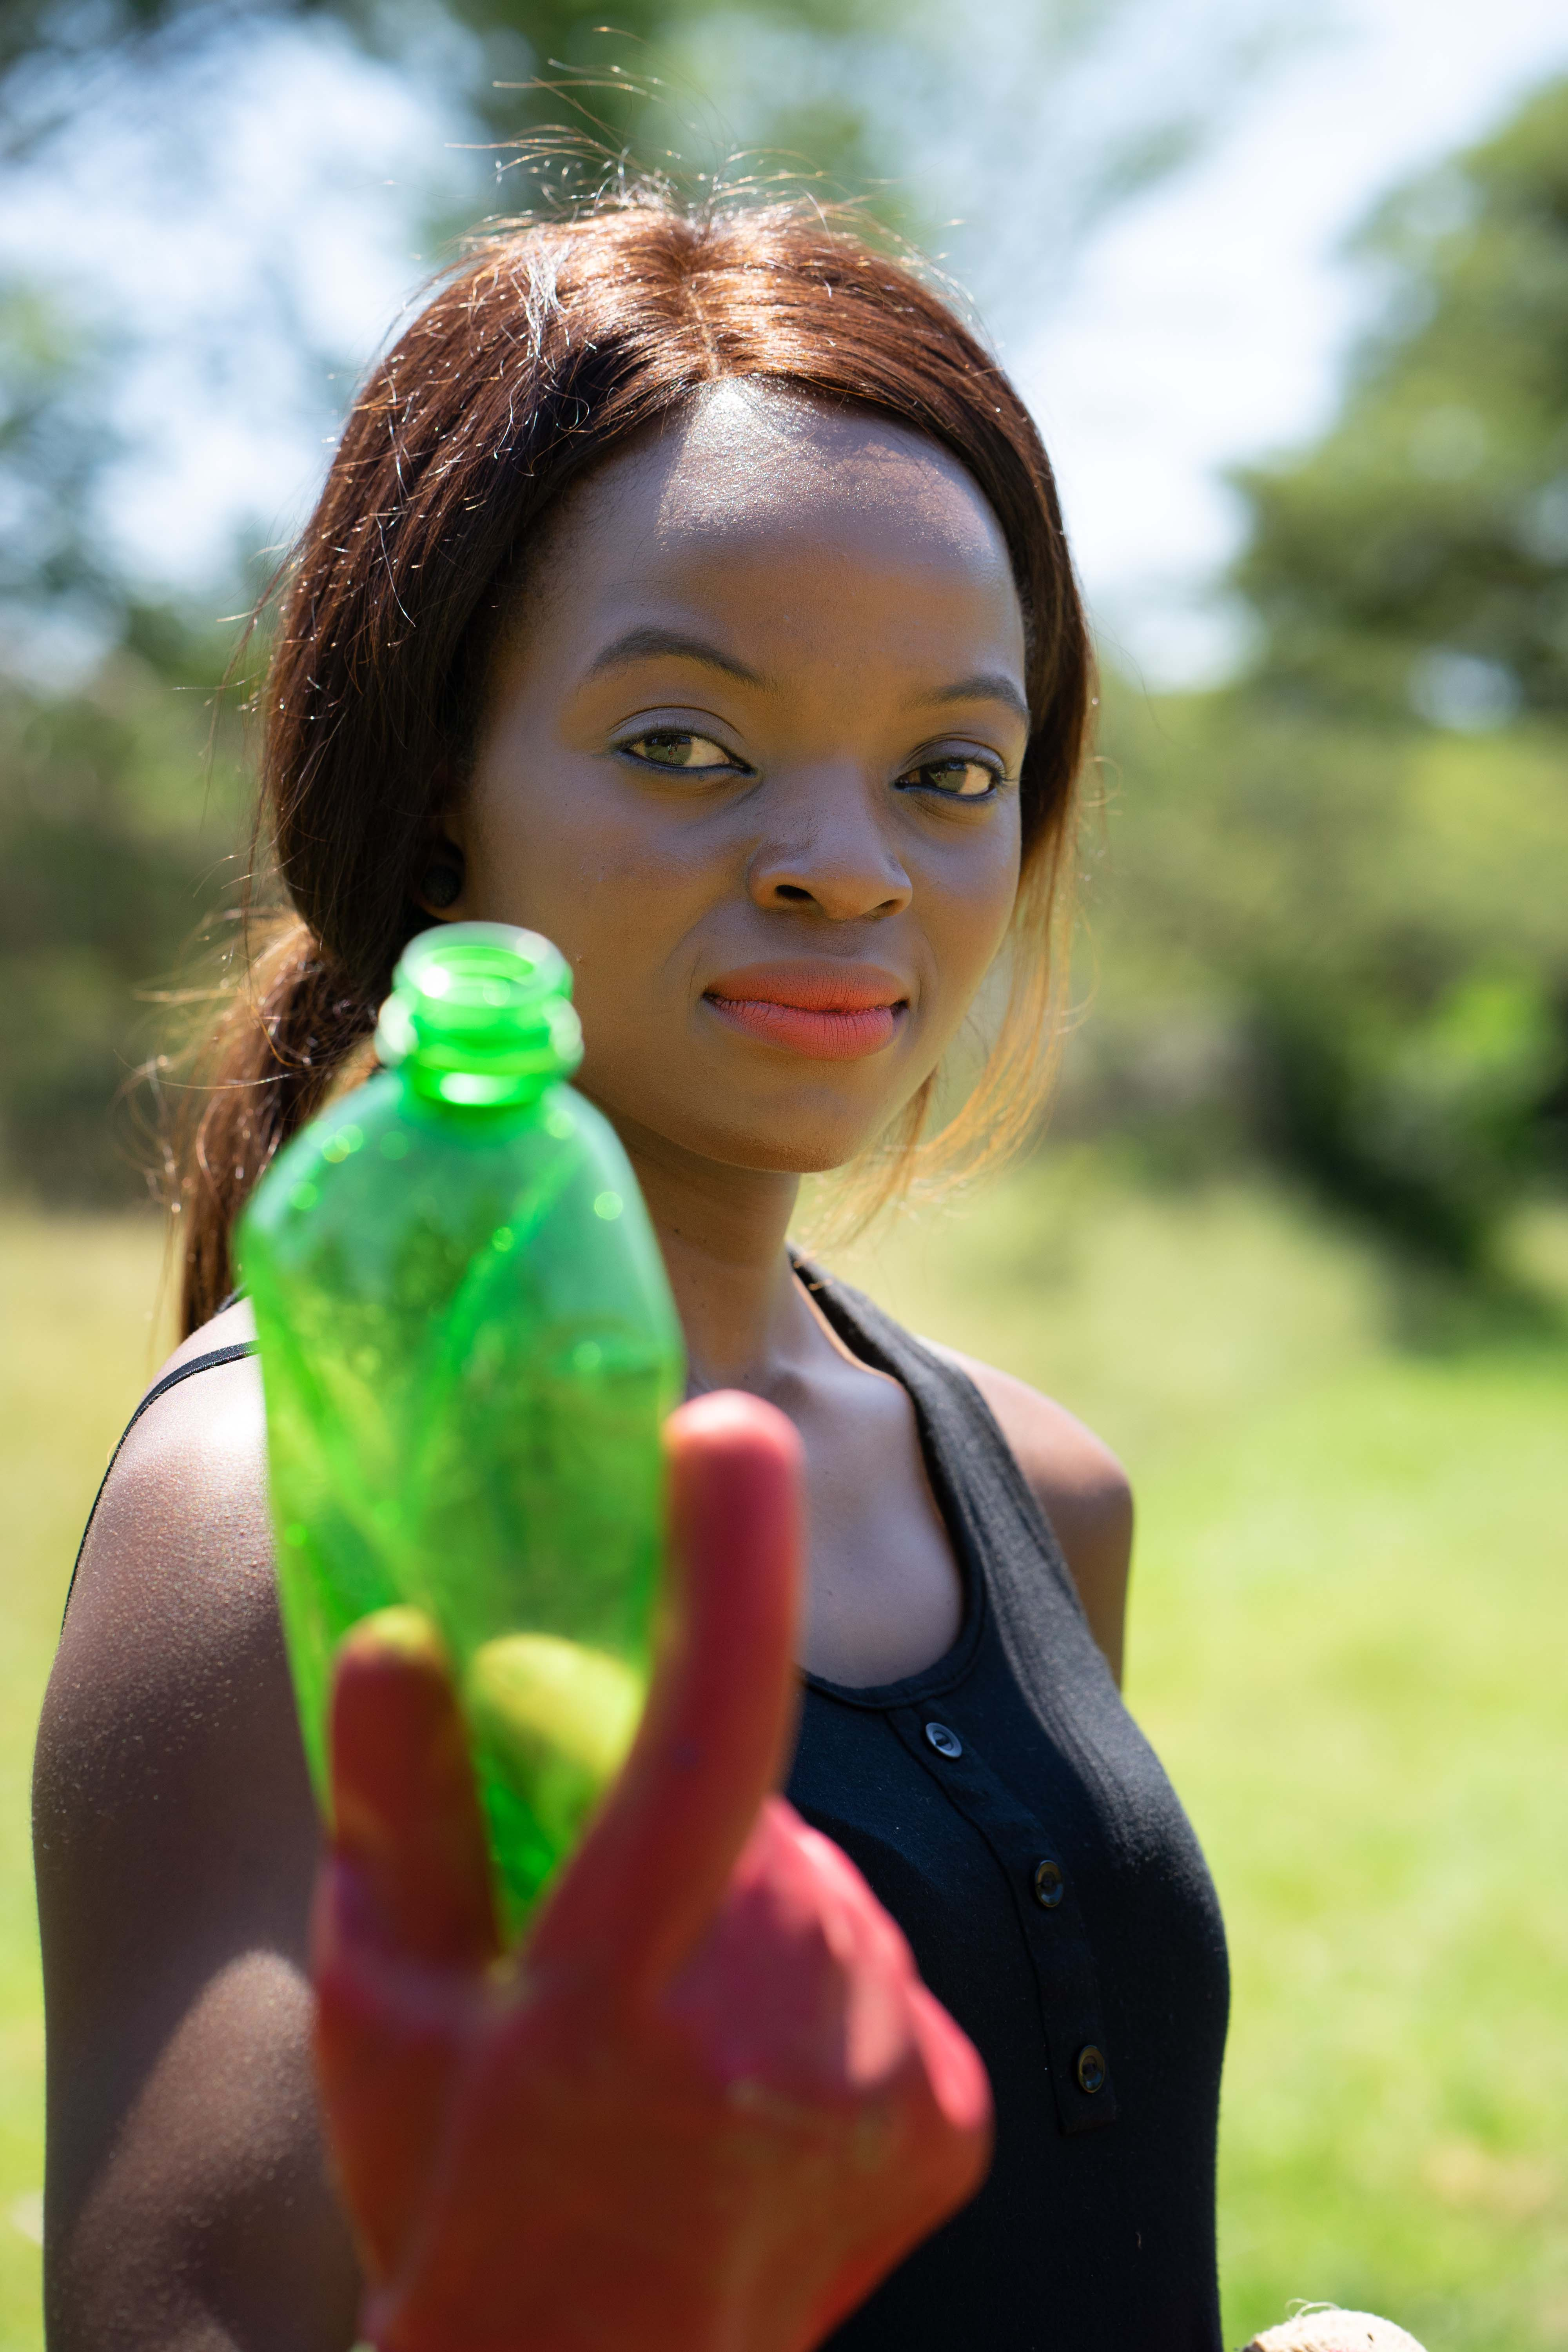 South Africa's 2019 recycling champions announced: Limpopo